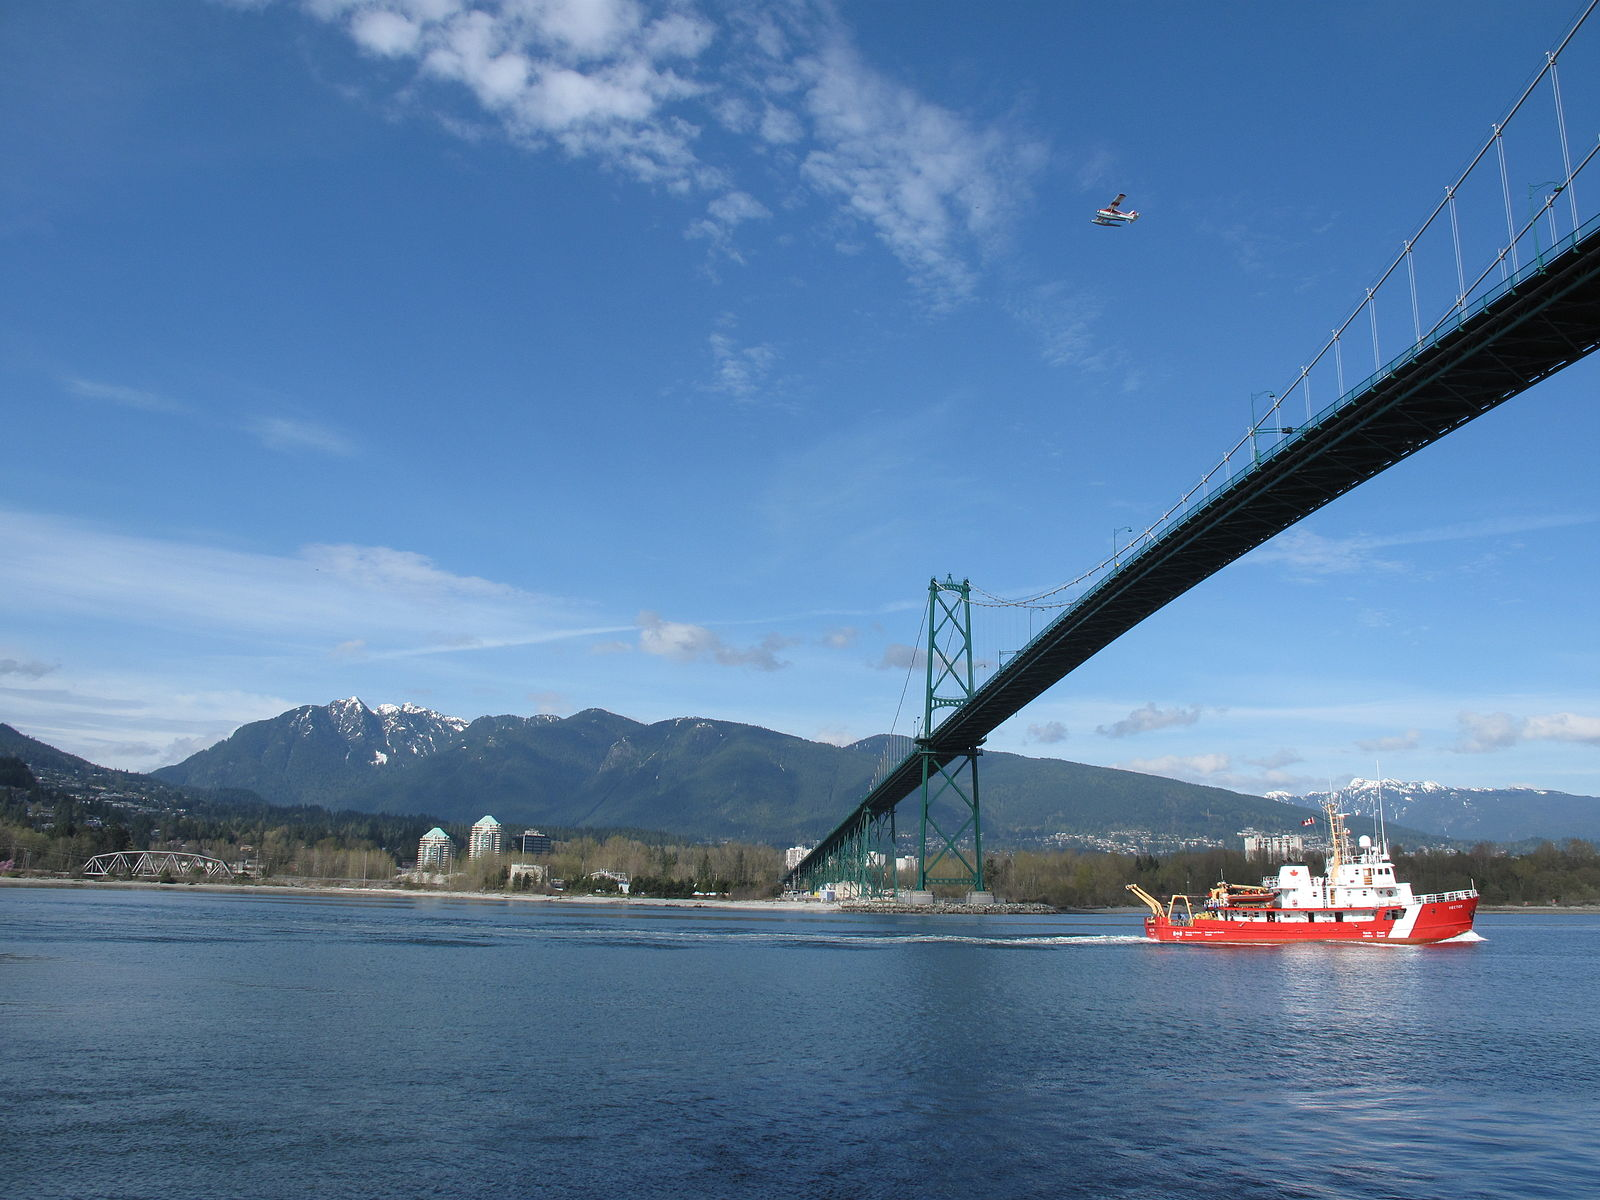 Canadian Coast Guard Ship Entering Vancouver's Harbour. Photo credit: Kyle Peace/www.diygenius.com